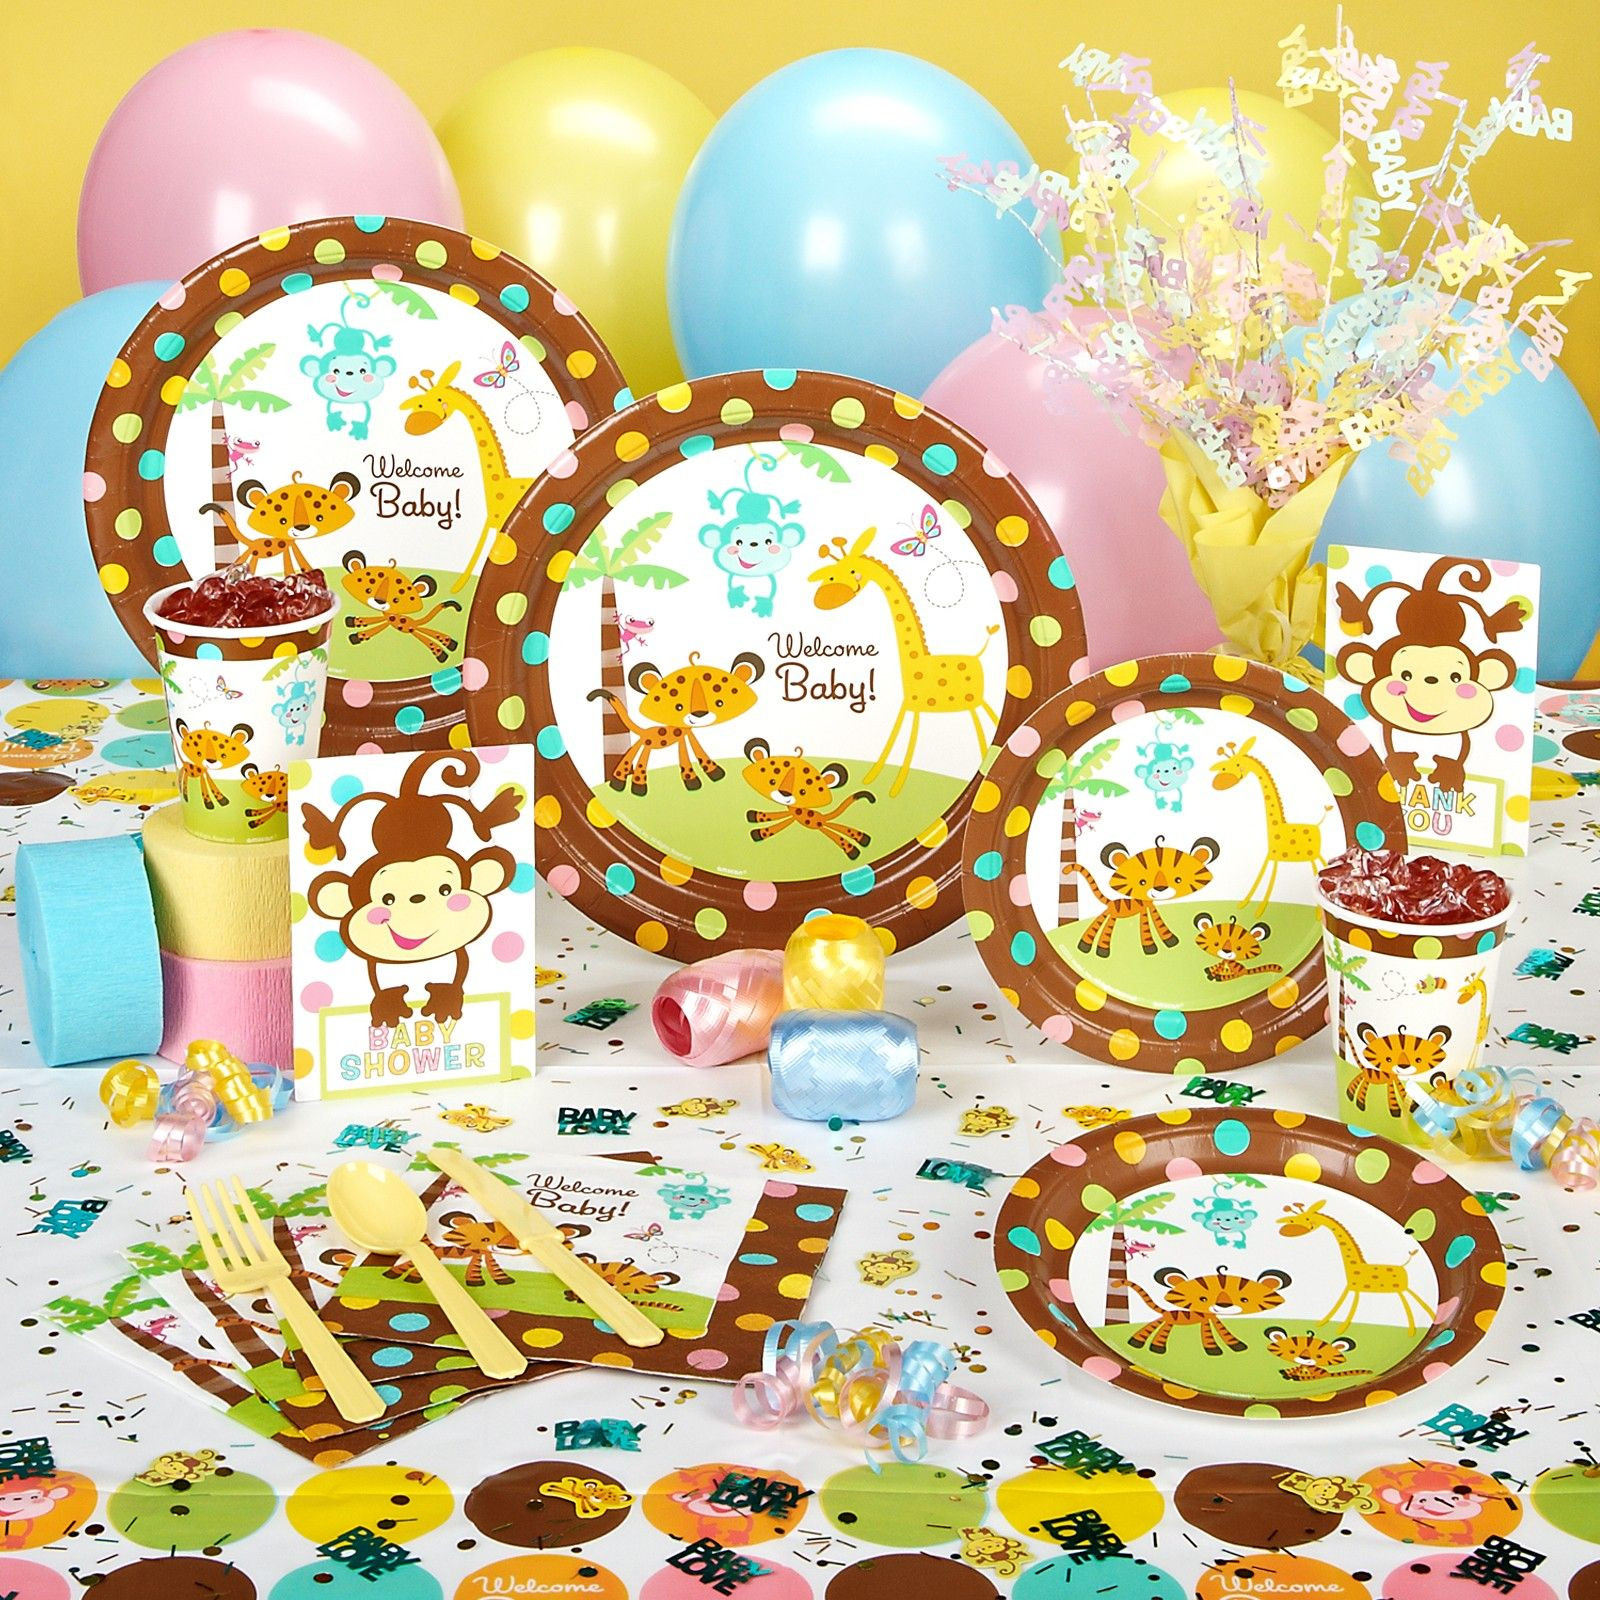 Party City Baby Shower Games  Dont want it to look like partycity threw up in the house